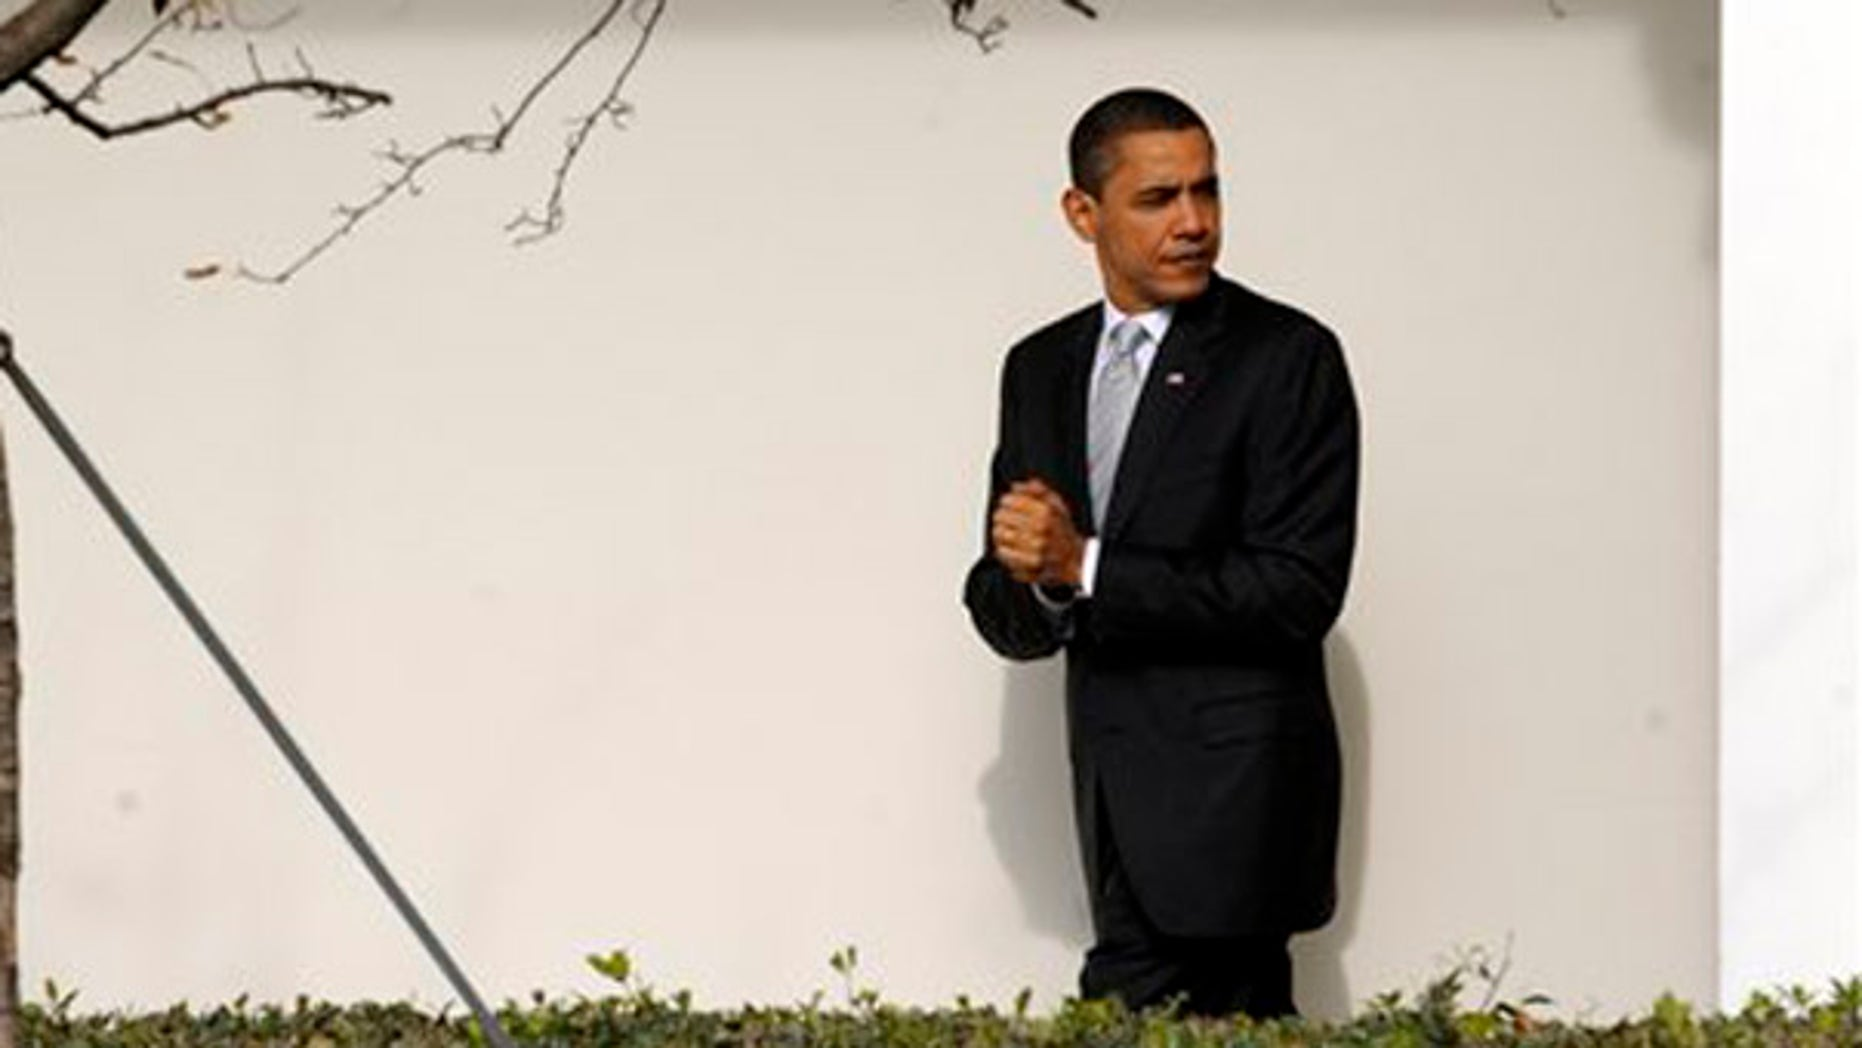 President Barack Obama walks along the Colonnade at the White House in Washington, Tuesday, Dec. 15, 2009. (AP)